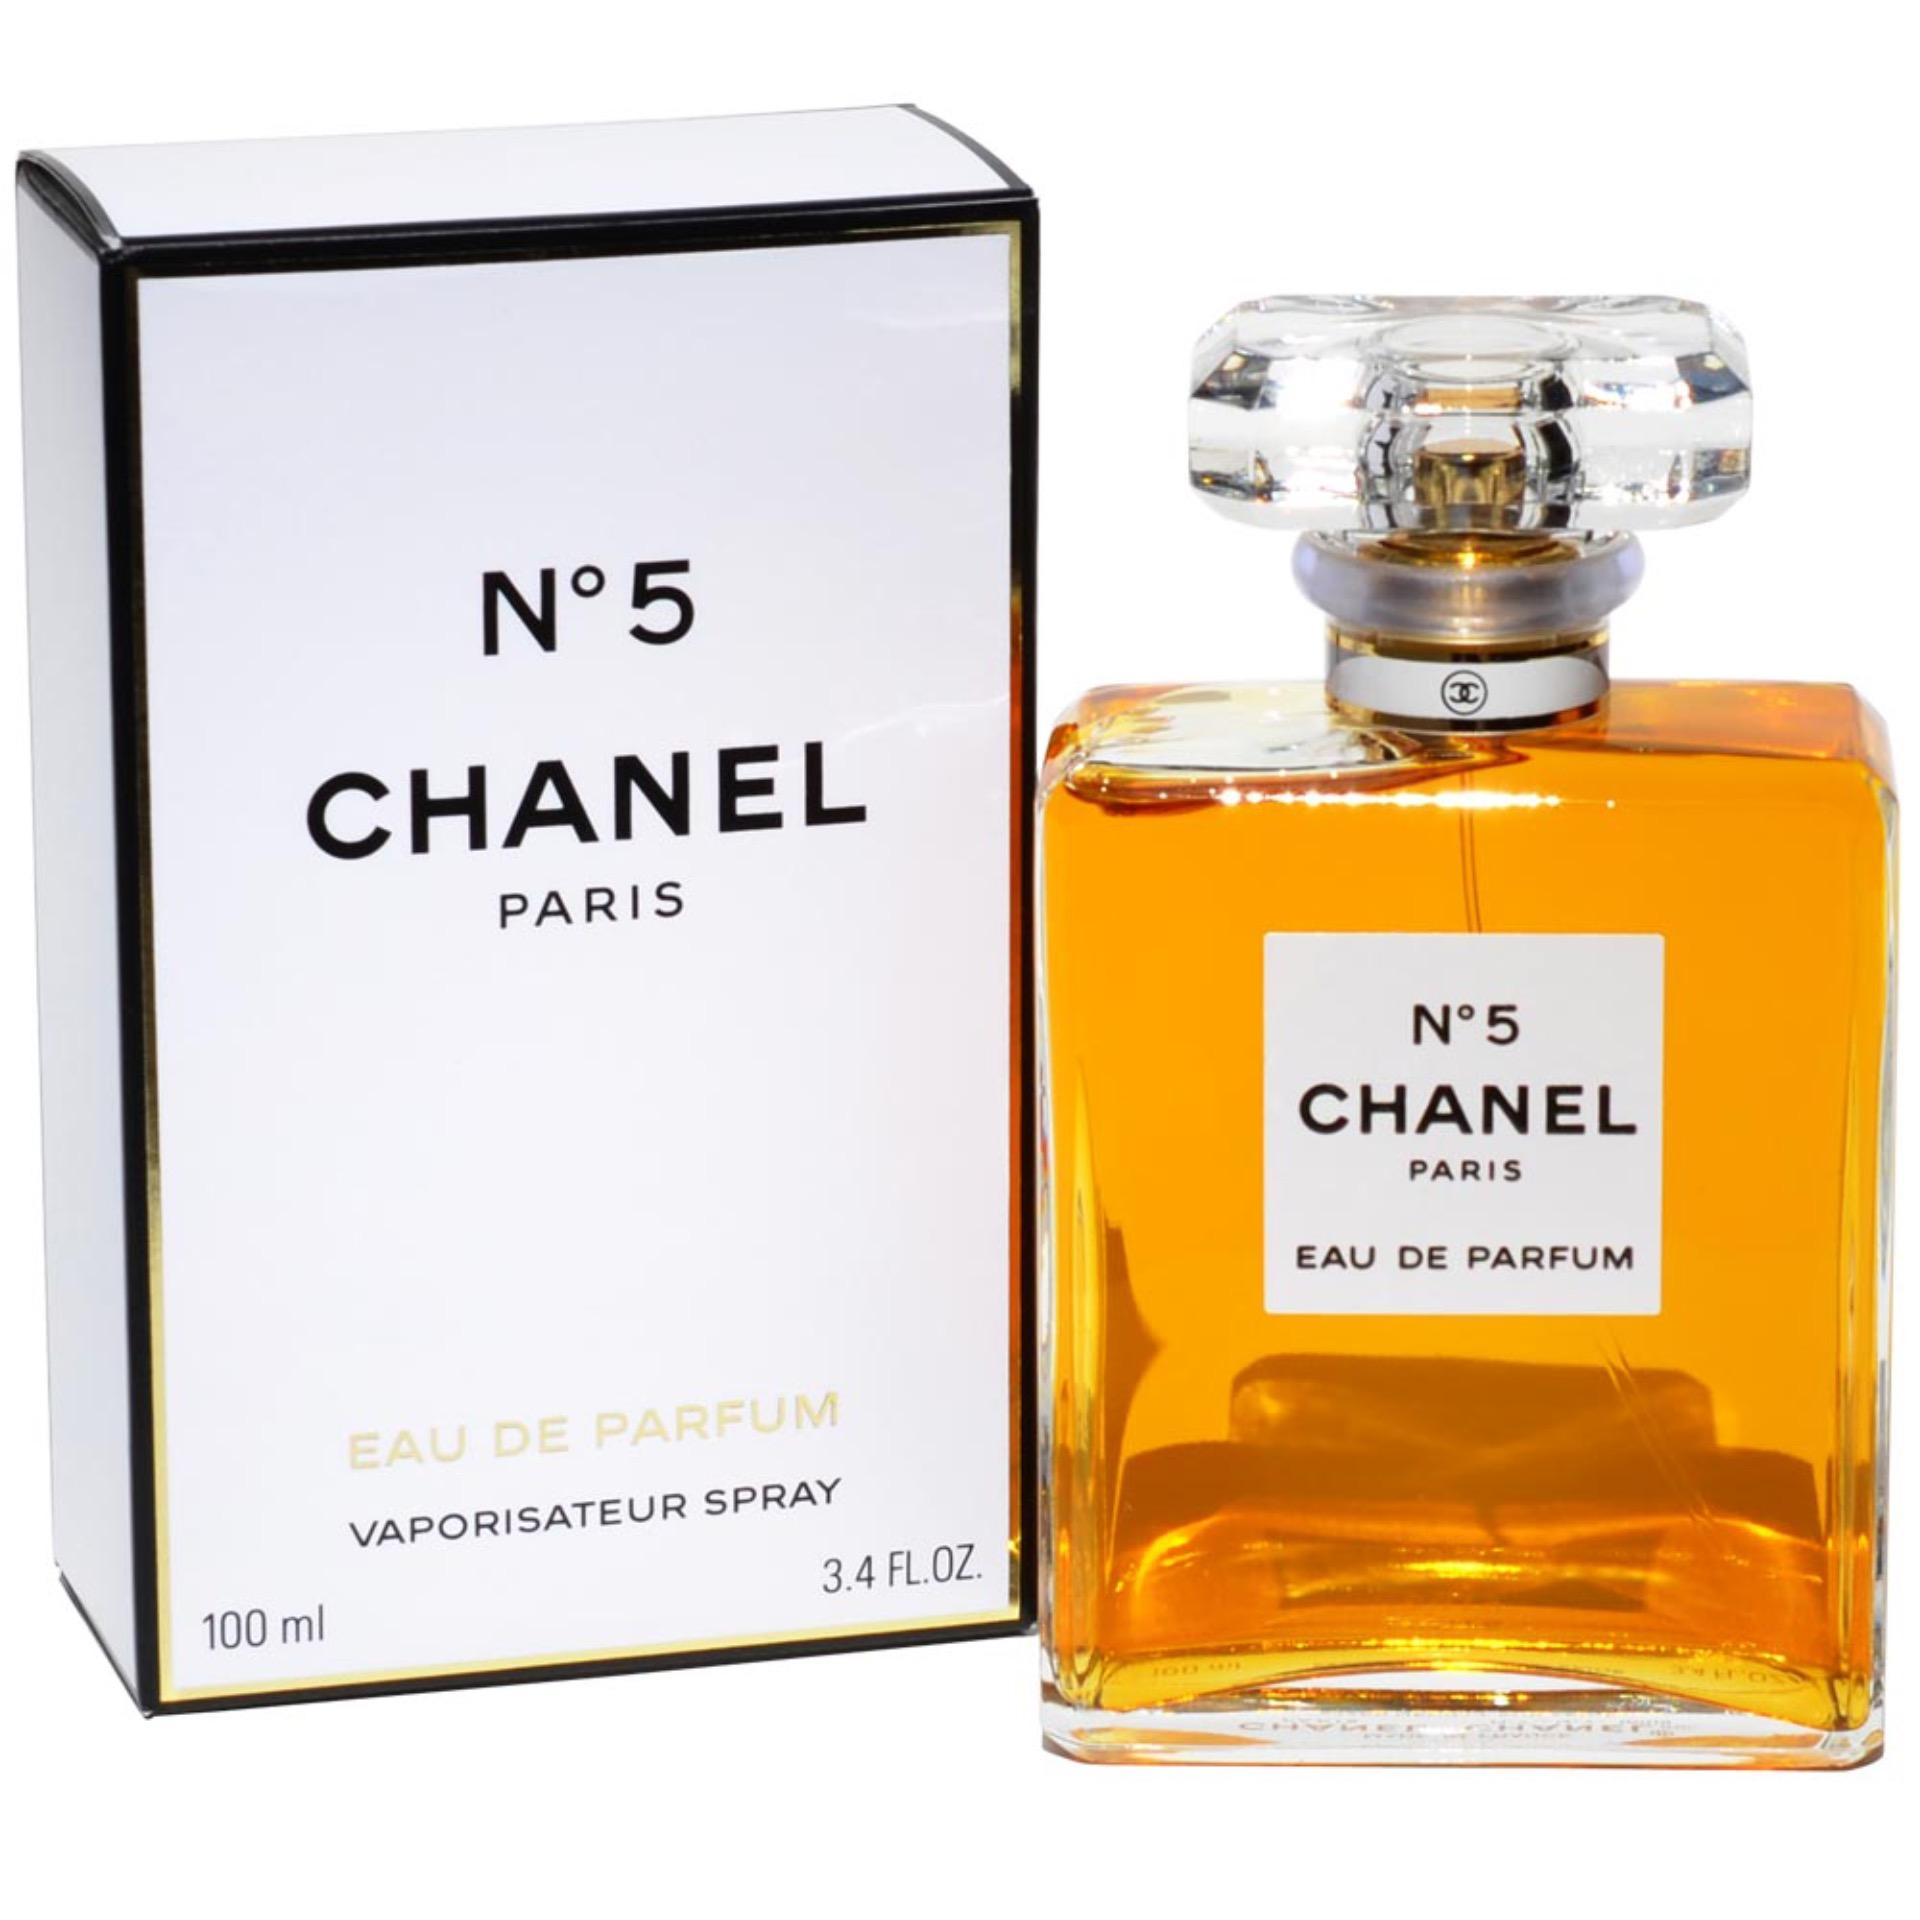 Chanel No. 5 Eau De Parfum for Women 100ml with Rosegold Earring